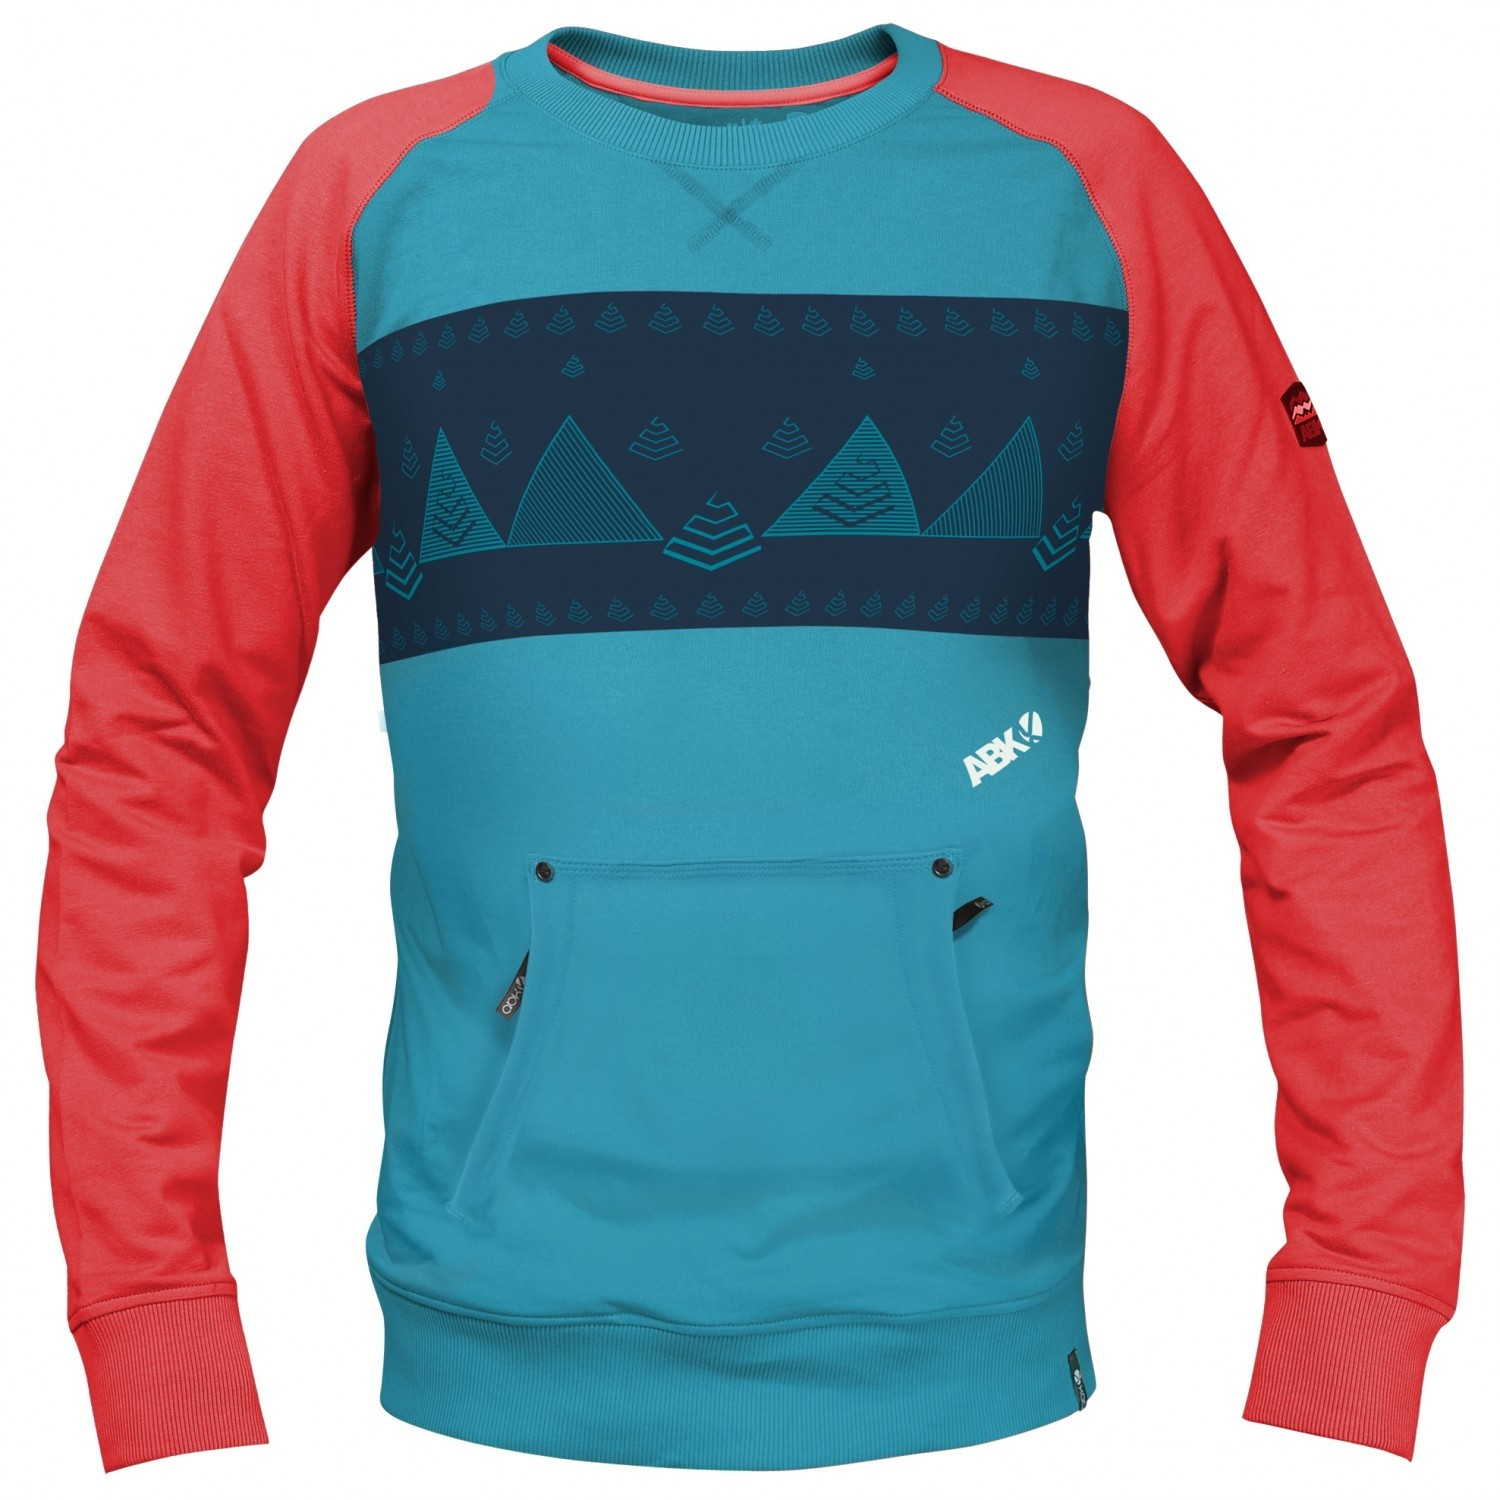 ABK Diedre Men's Sweater - Mosaic Blue